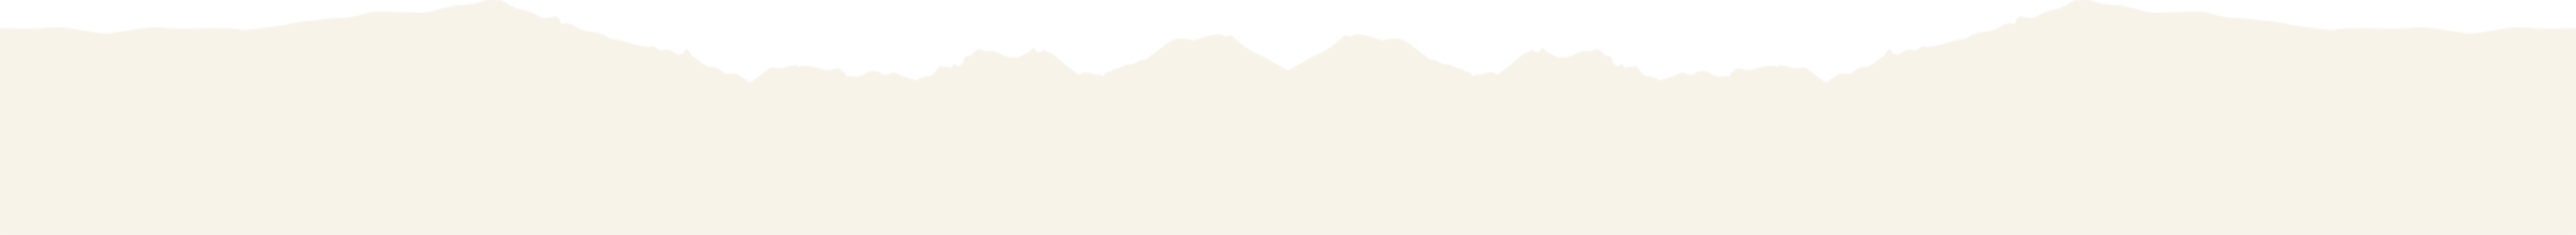 Overlay that looks like Mountains